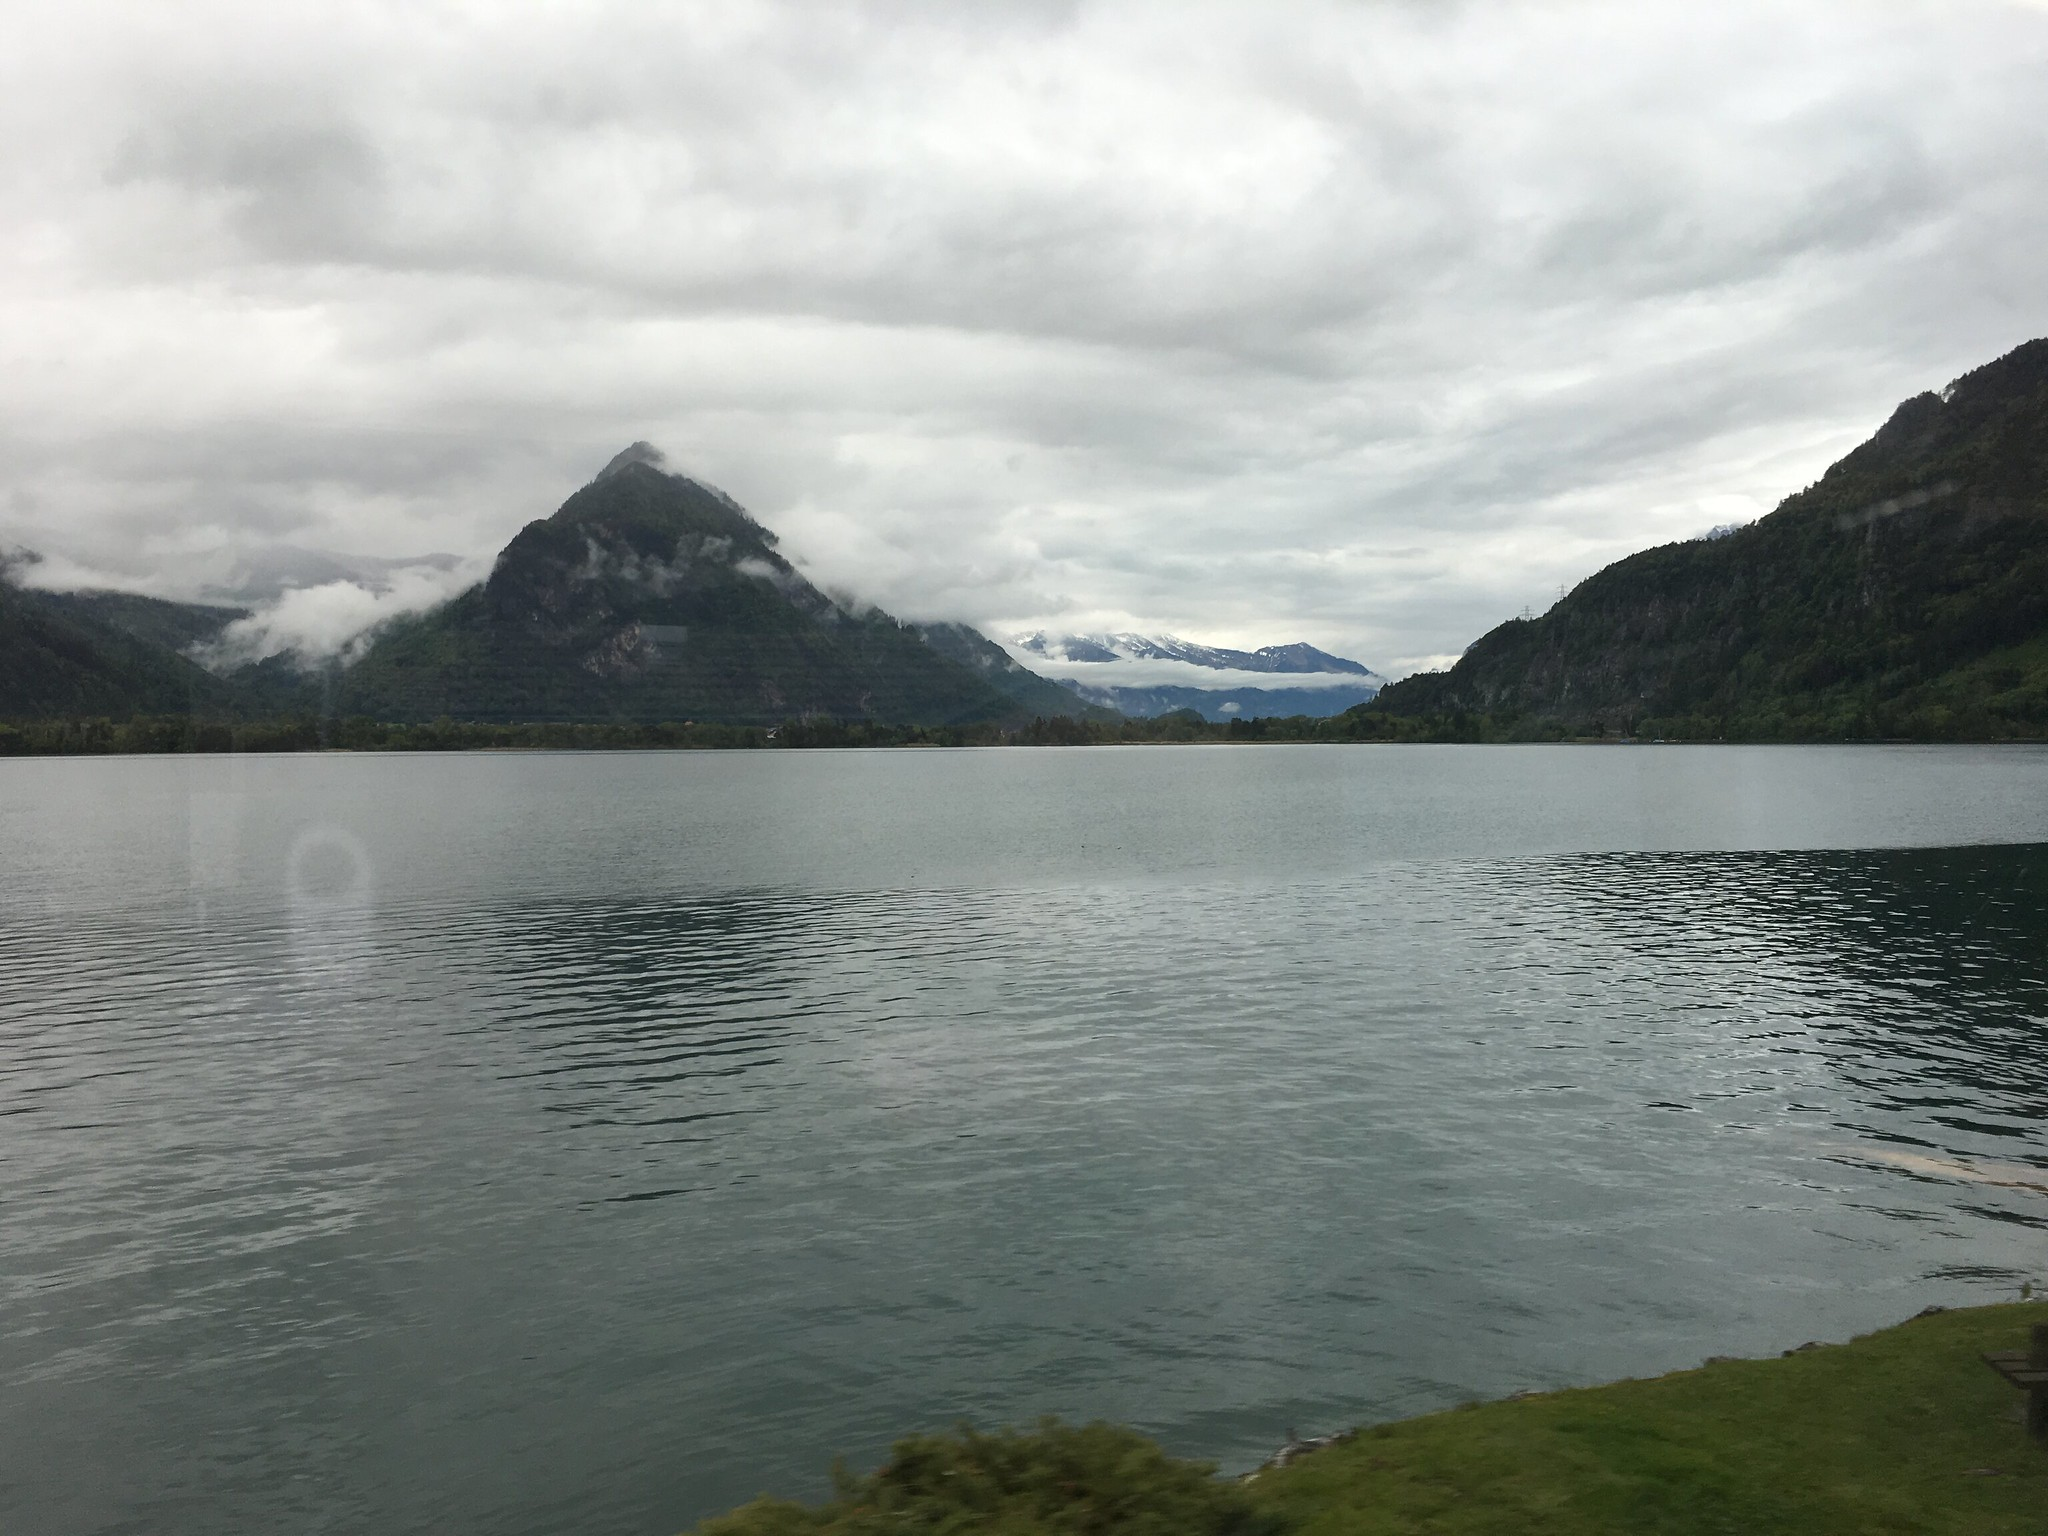 Train to Interlaken